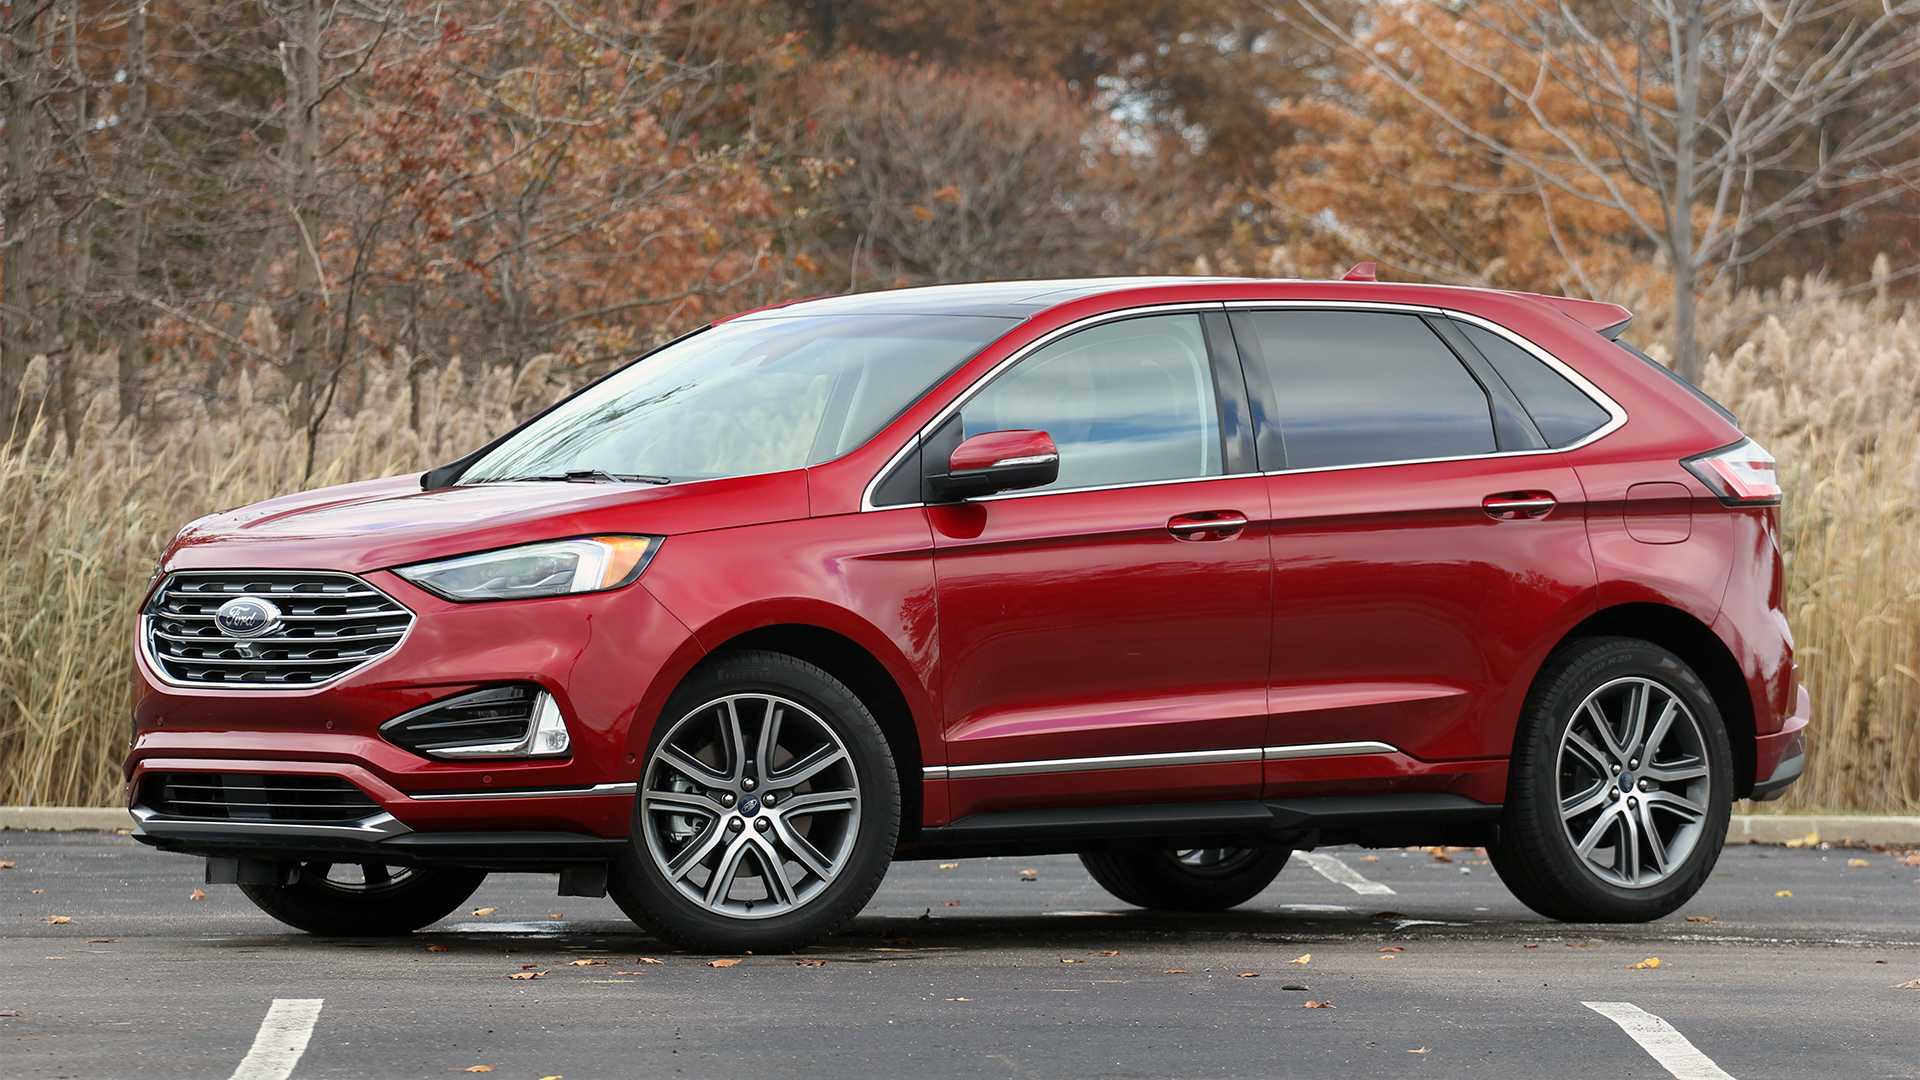 Image result for 2019 ford edge""